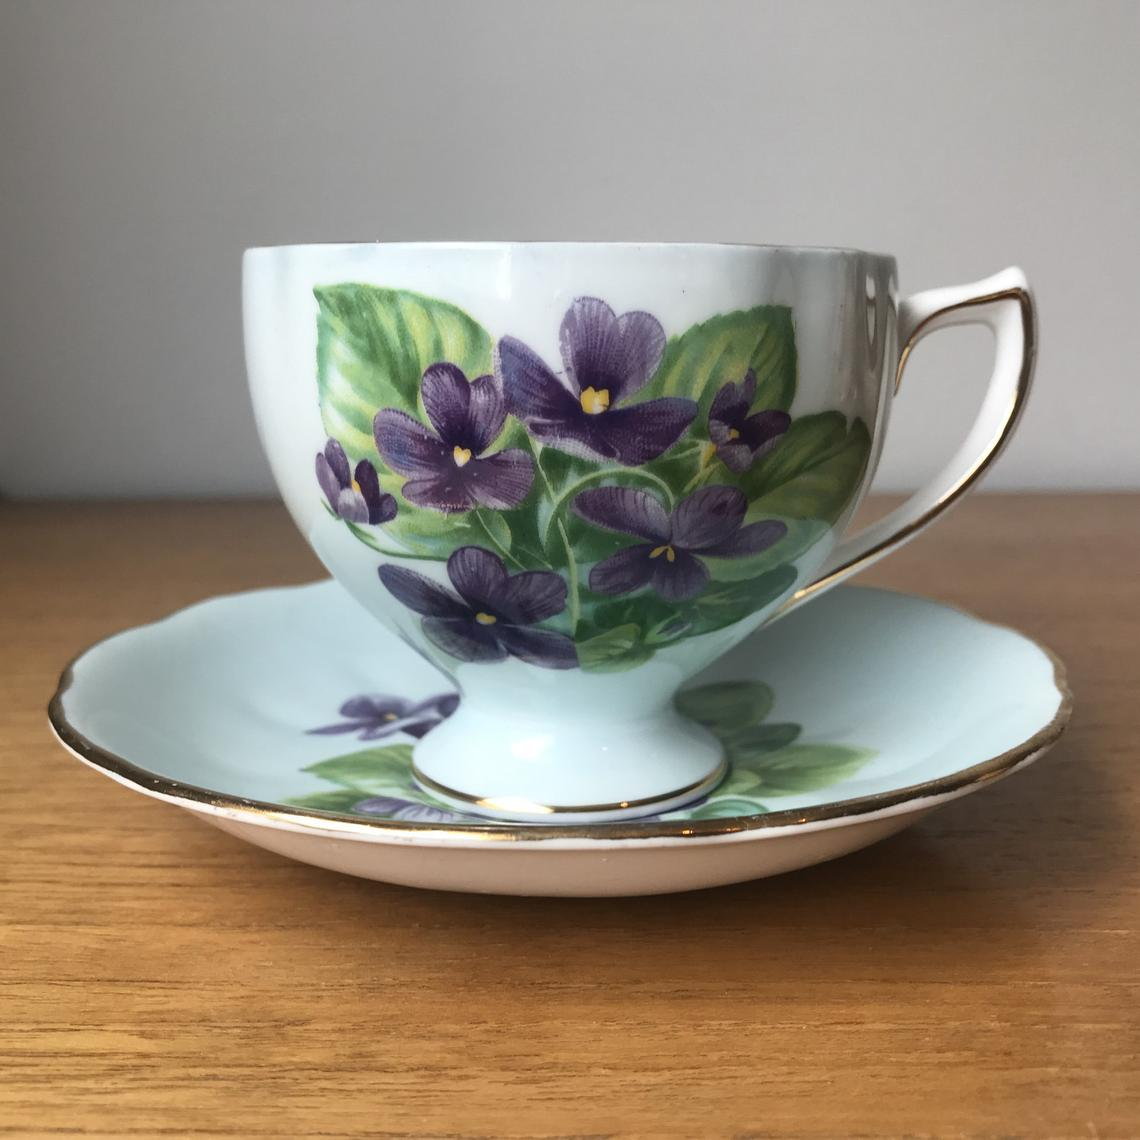 Royal Vale Pale Blue Teacup and Saucer, Purple Violets Tea Cup and Saucer